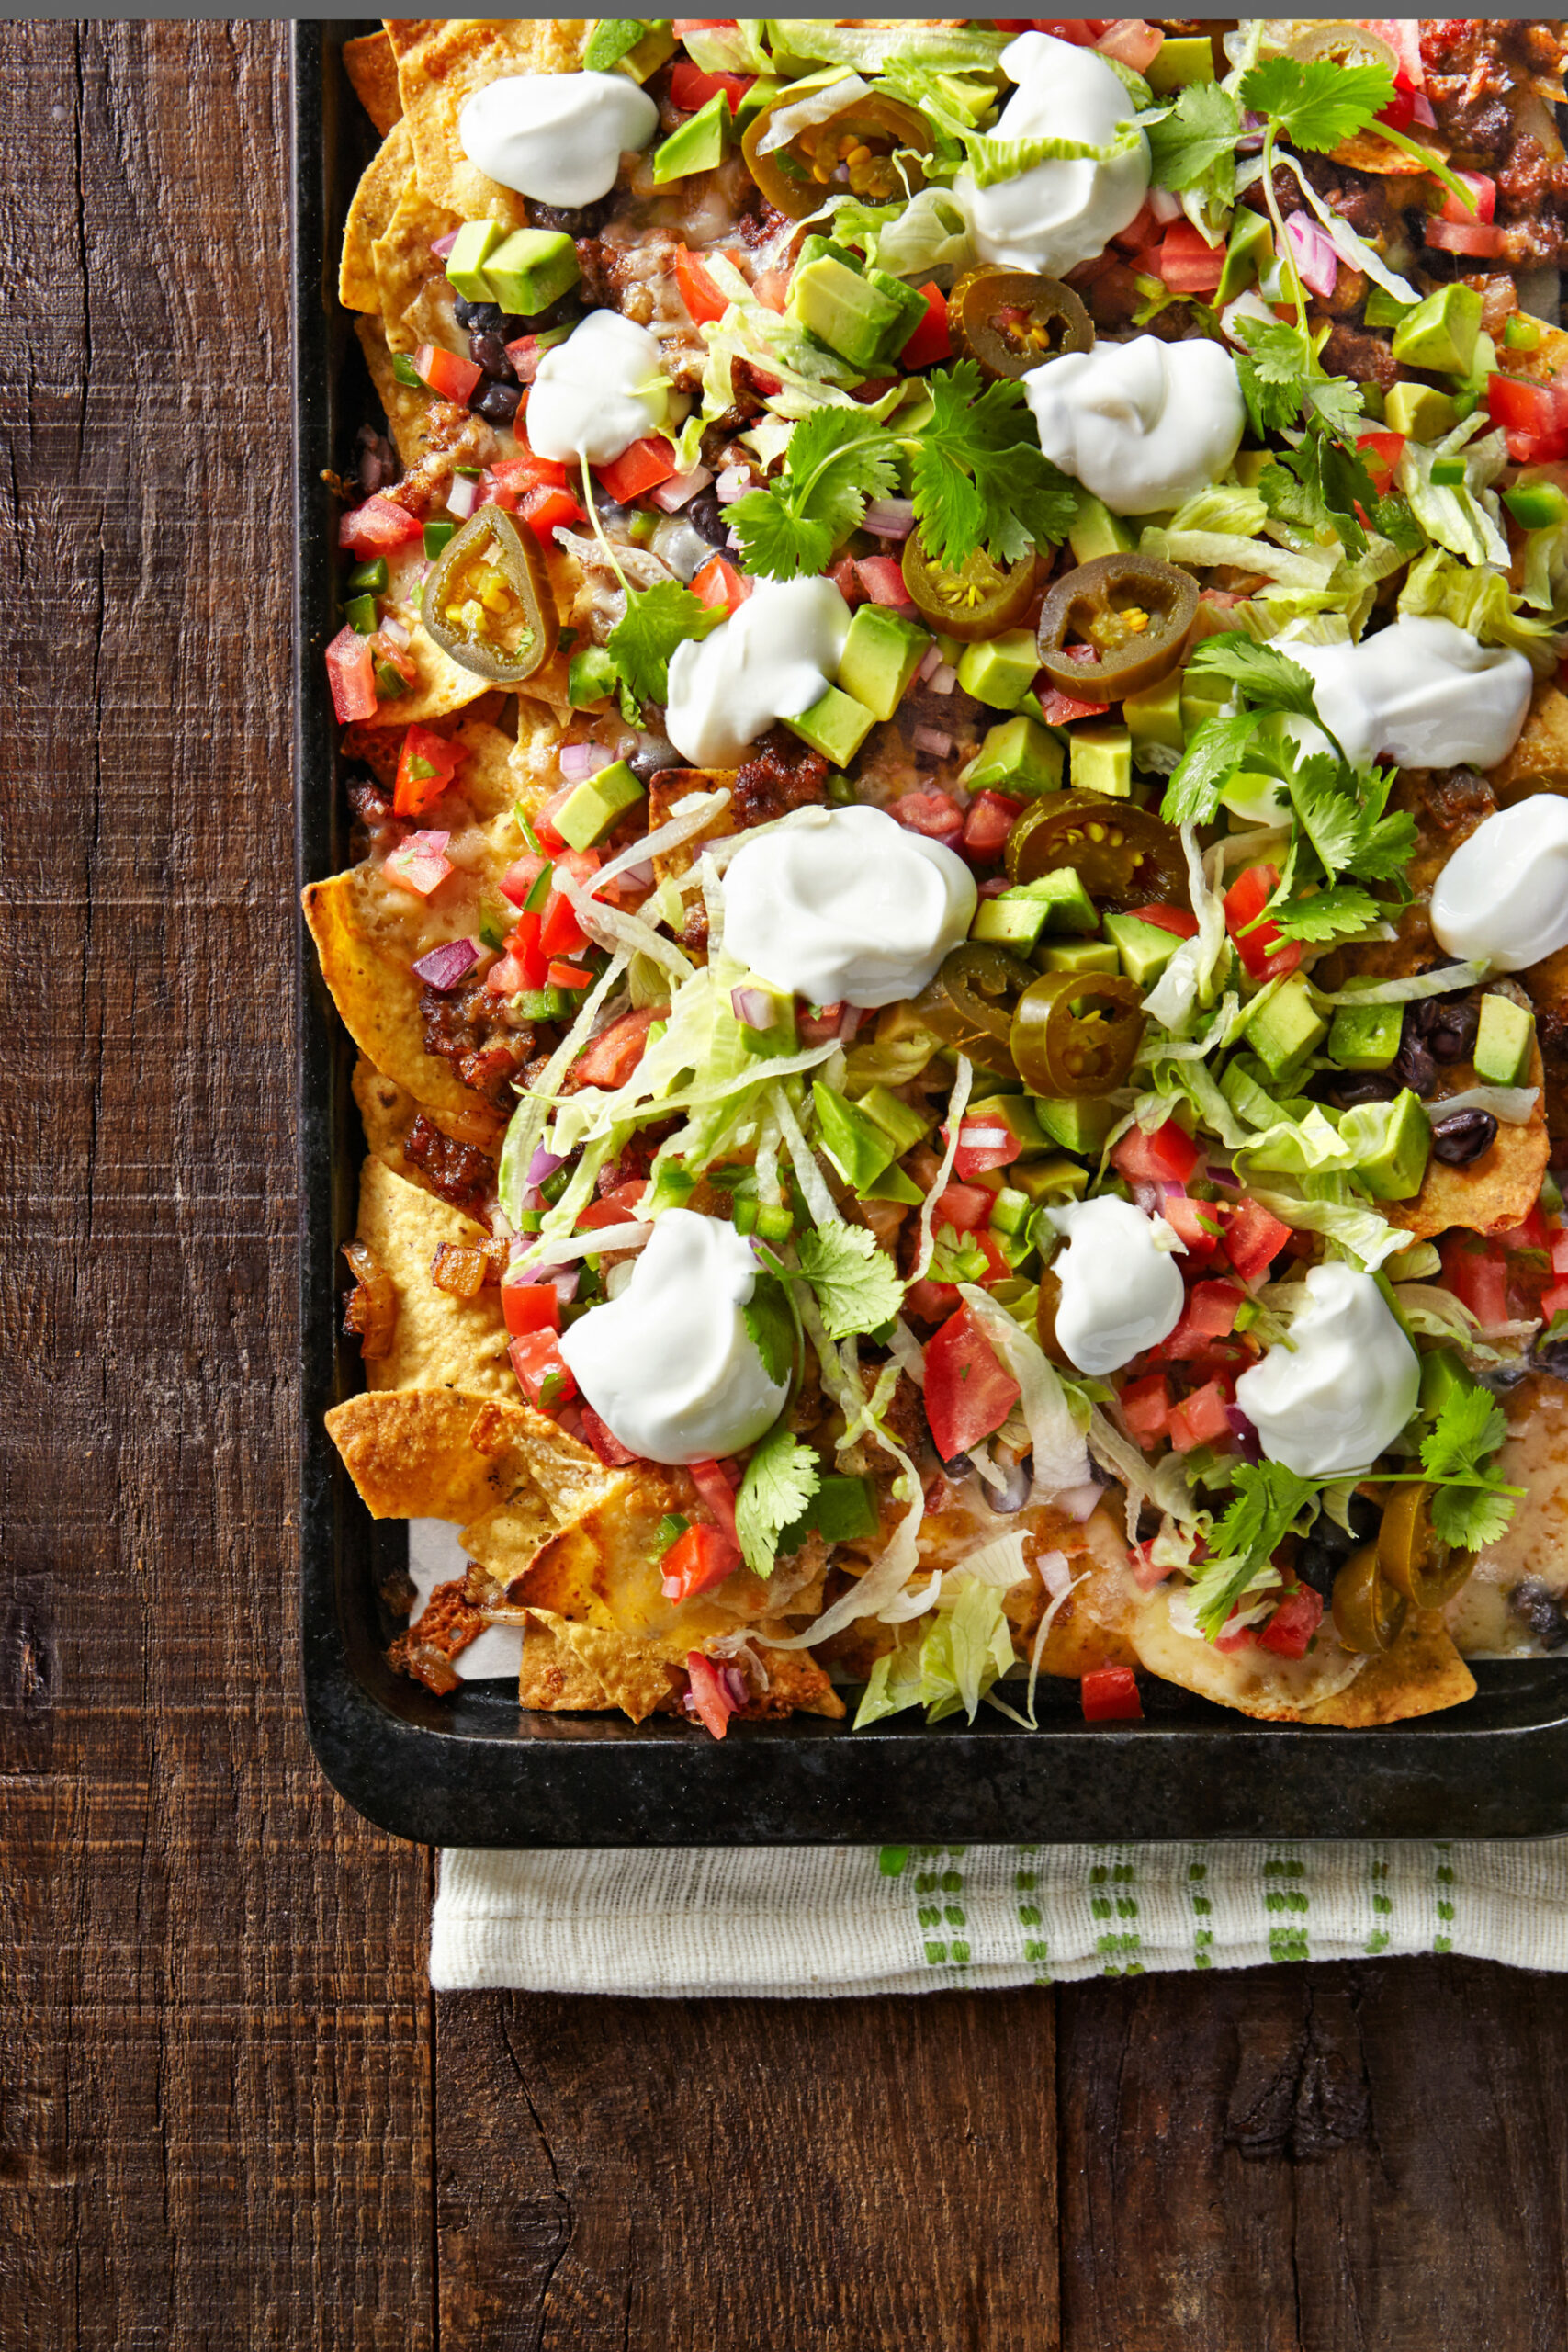 70+ Super Bowl Party Food Recipes & Ideas 2017 - Country ..